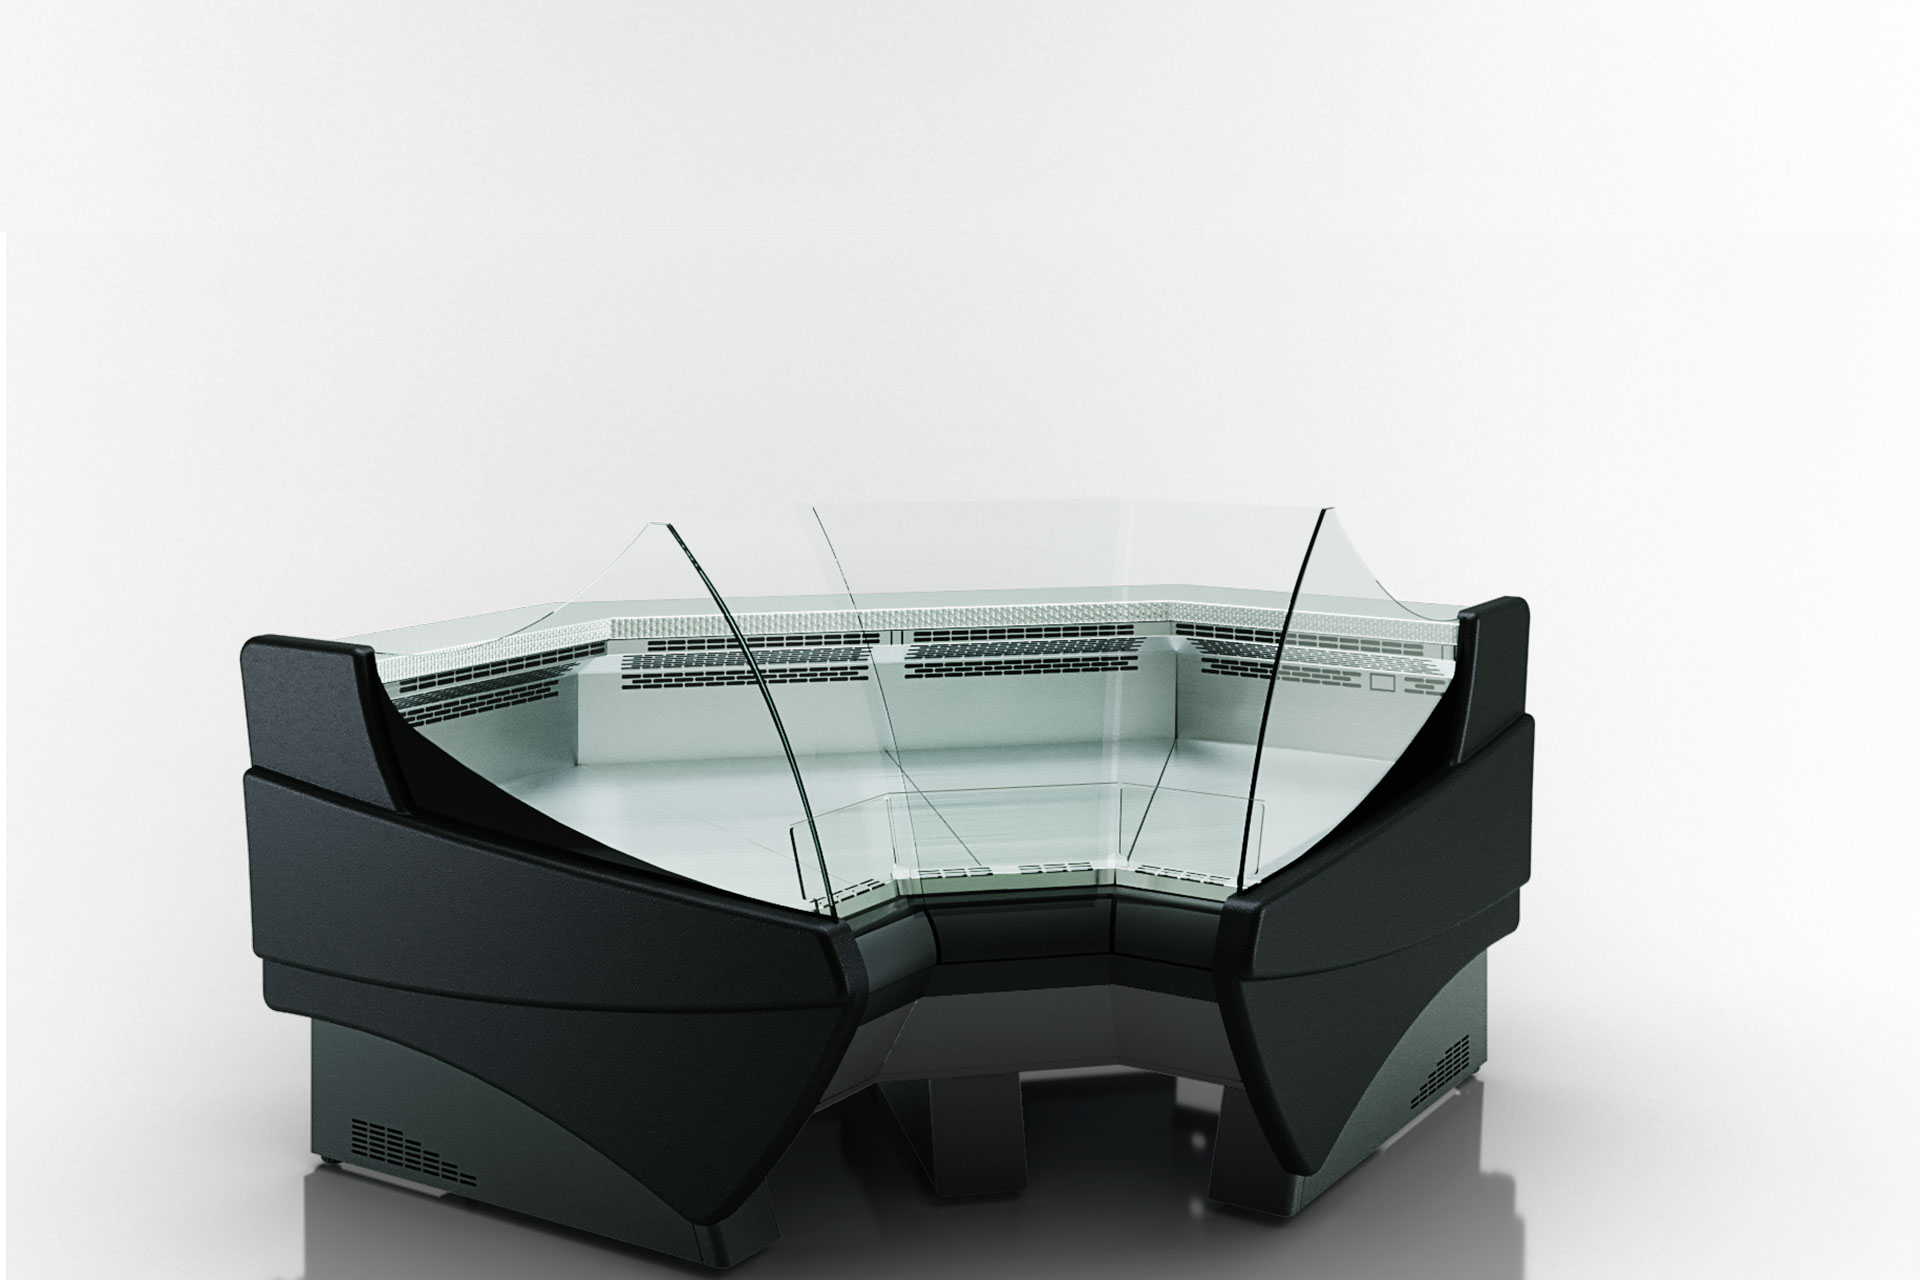 Counter Symphony luxe MG 120 deli T2 110-DLM-IS90